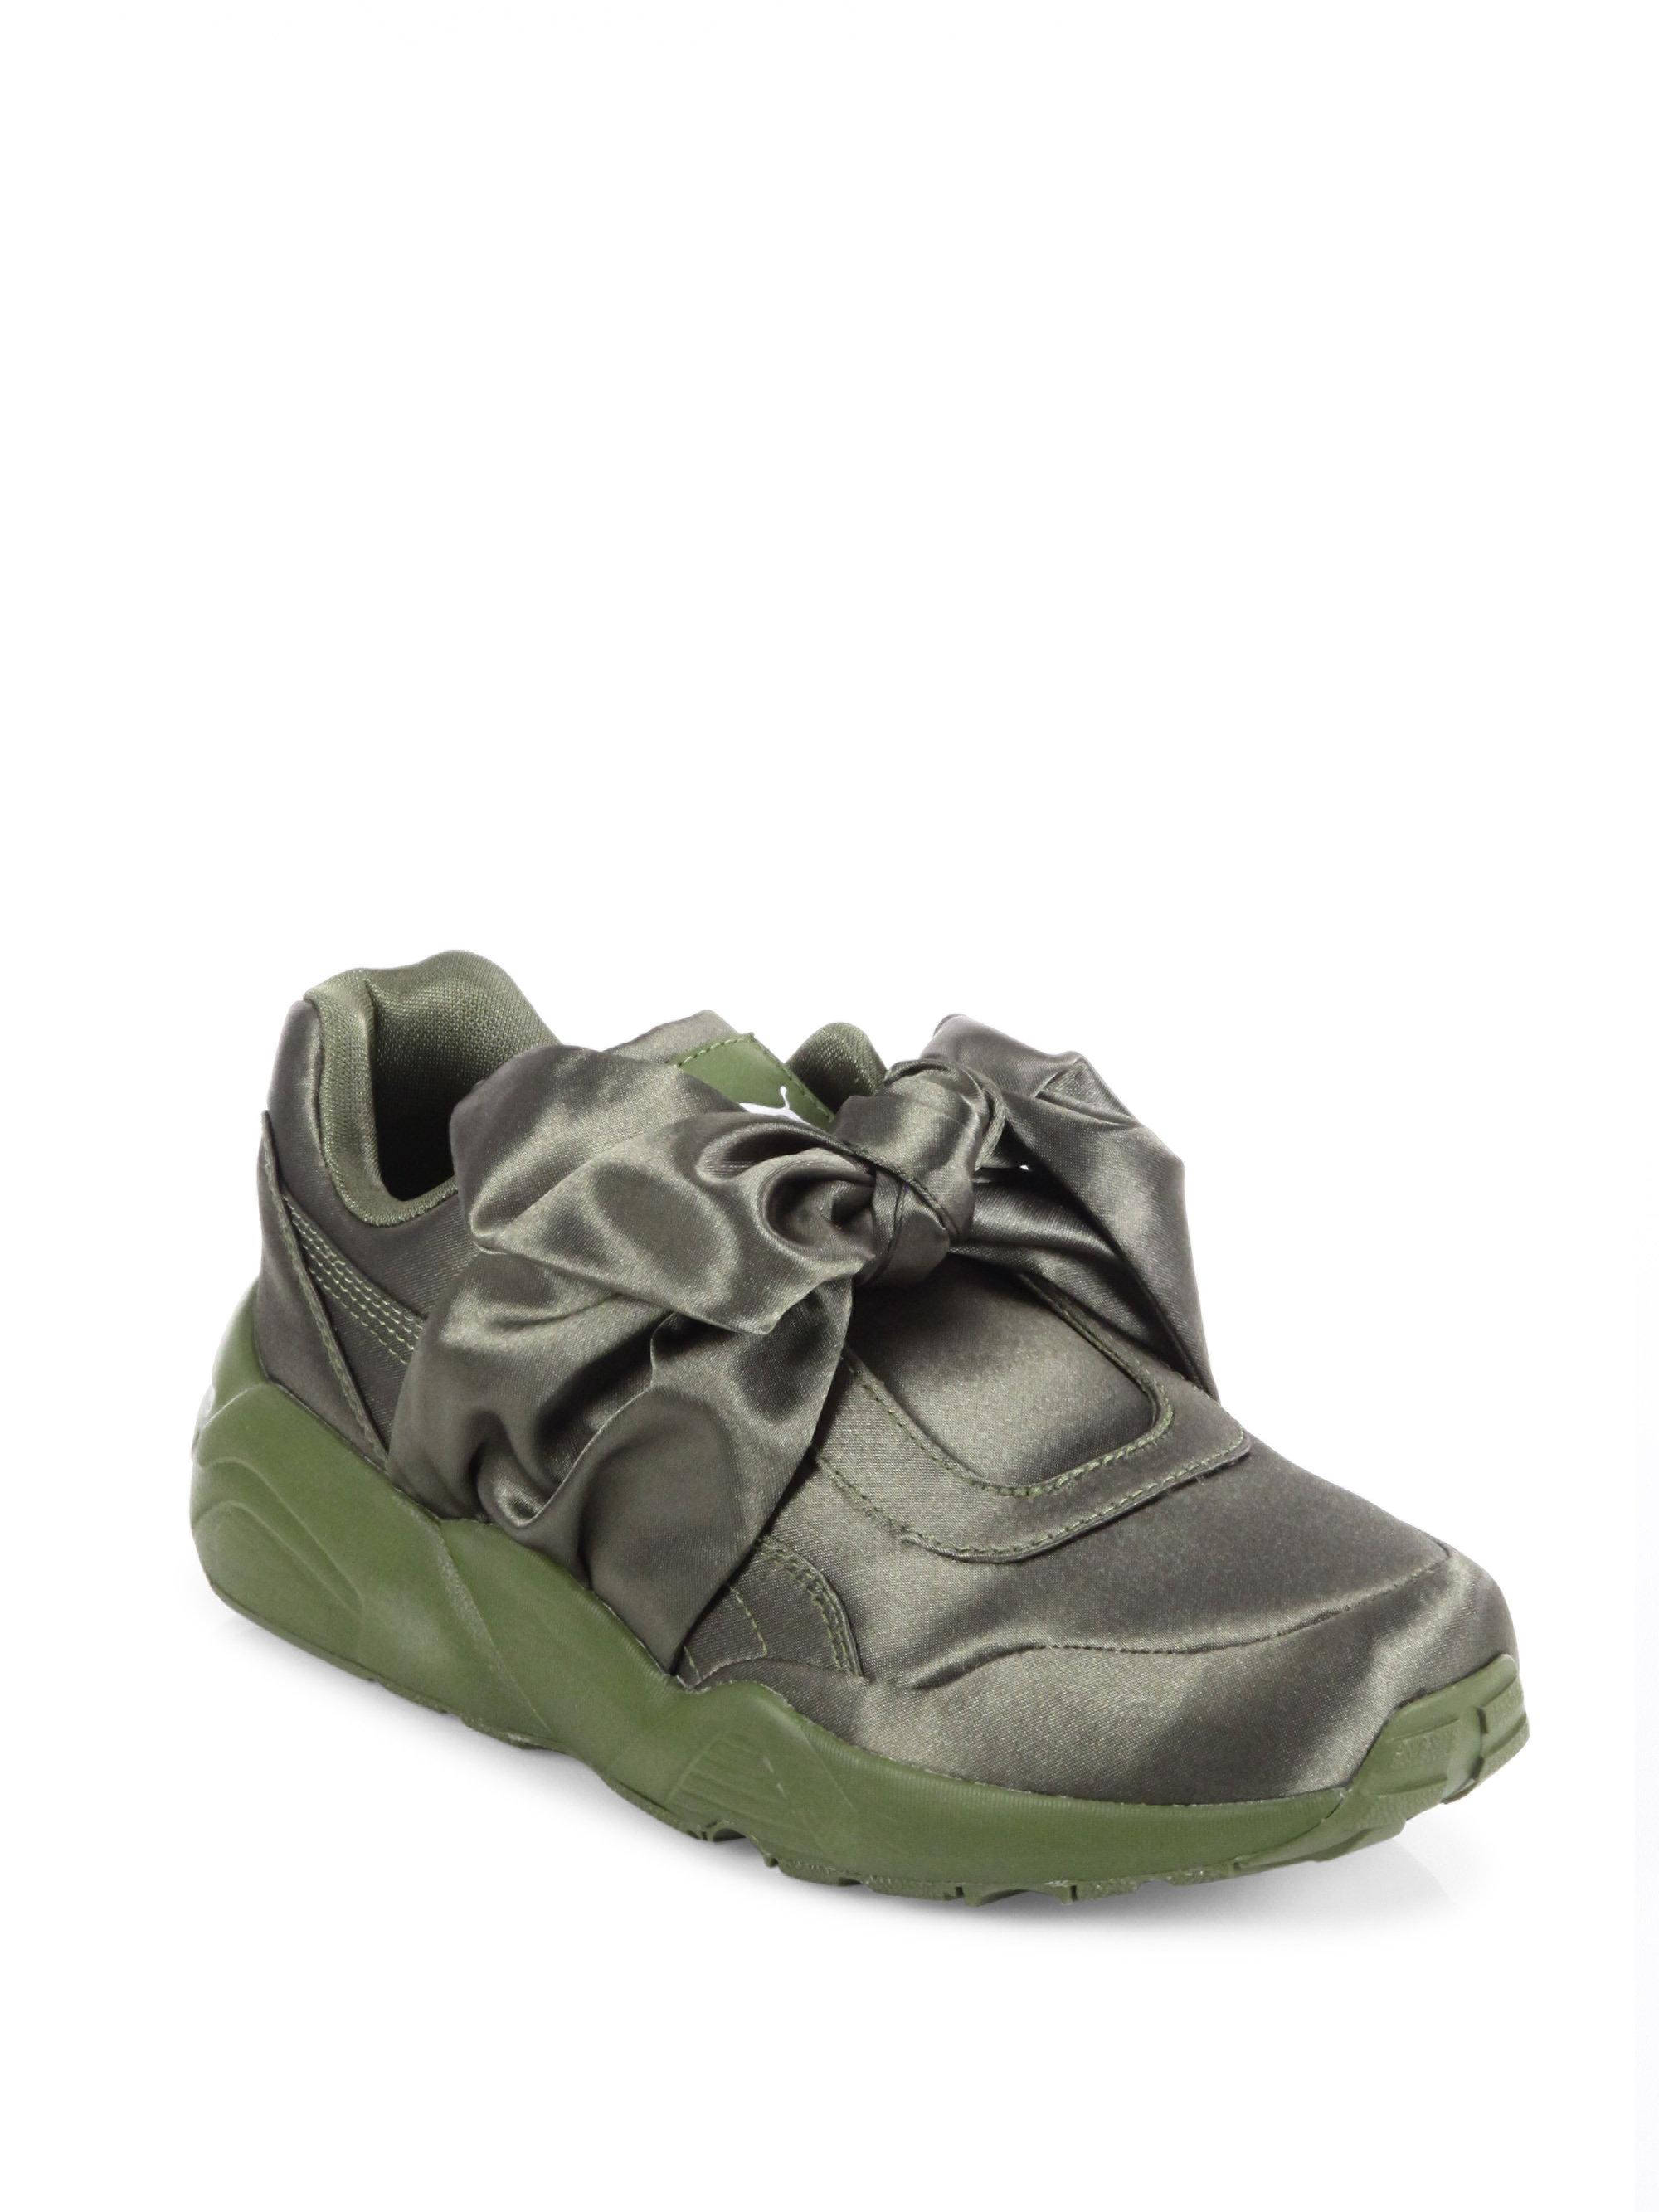 buy cheap 154f9 d4356 PUMA Fenty X Rihanna Satin Bow Sneakers in Green - Lyst